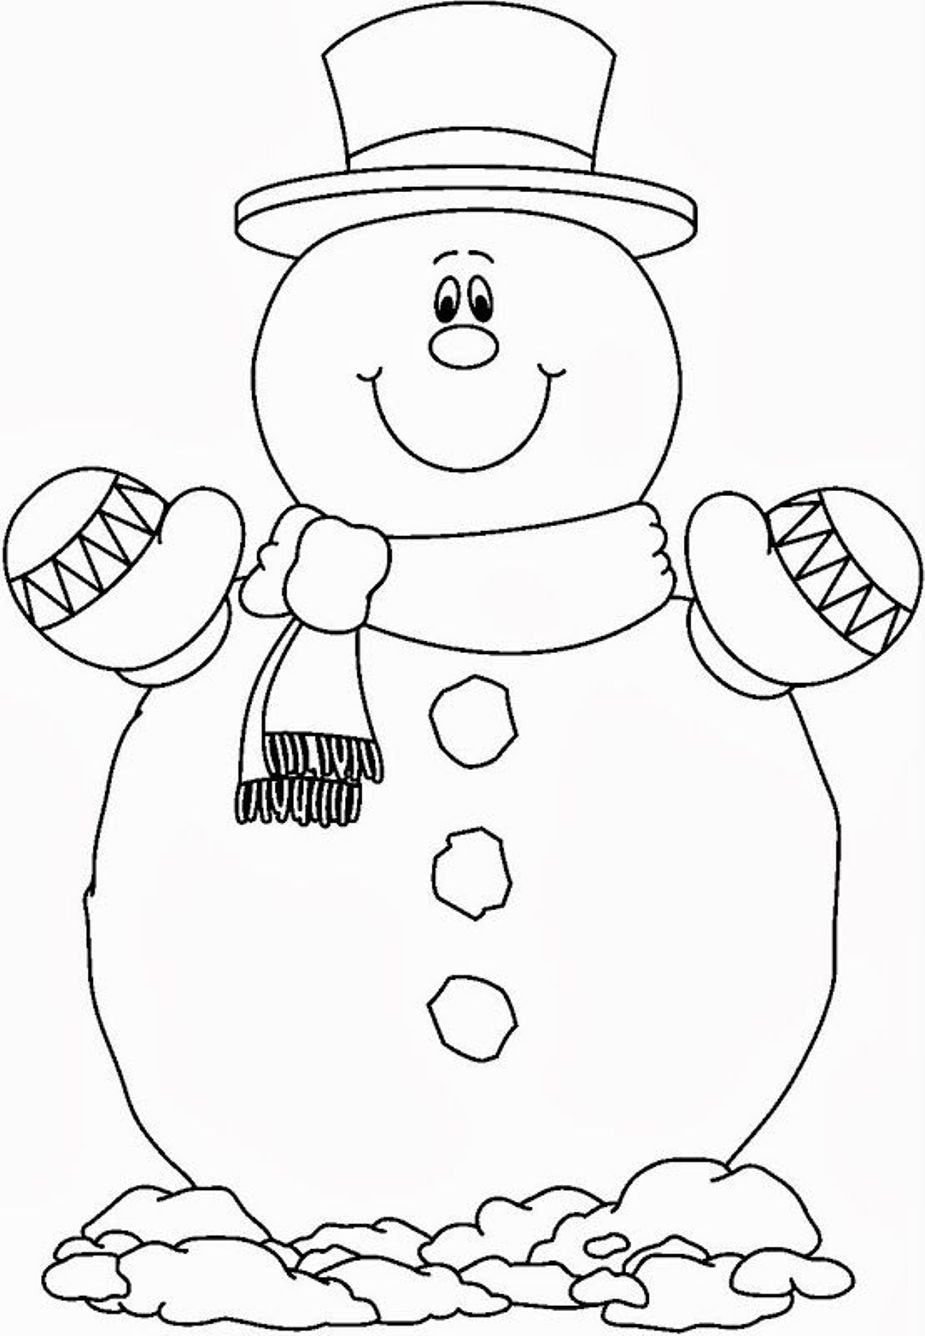 Smilling Snowman Coloring Pages